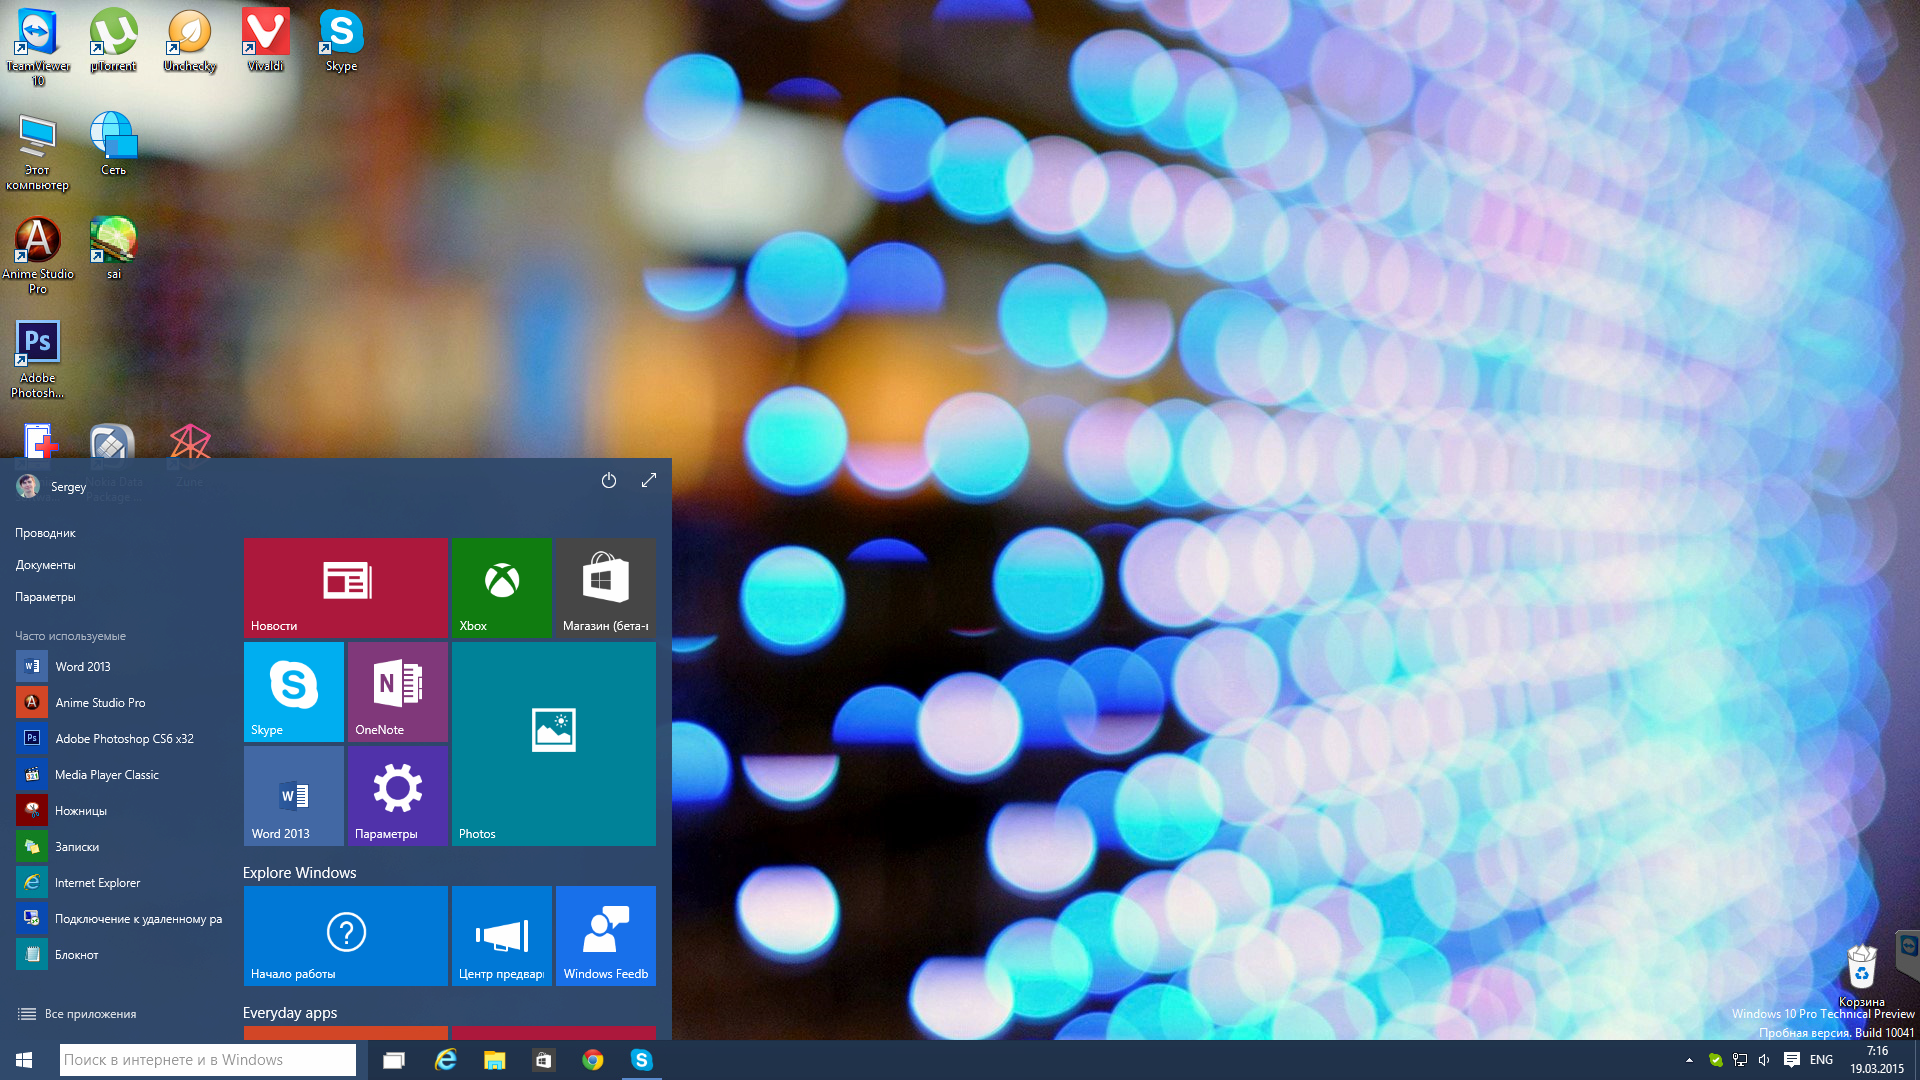 windows 10 technical preview build 10041 windows 10 technical preview build 10041 ccuart Gallery